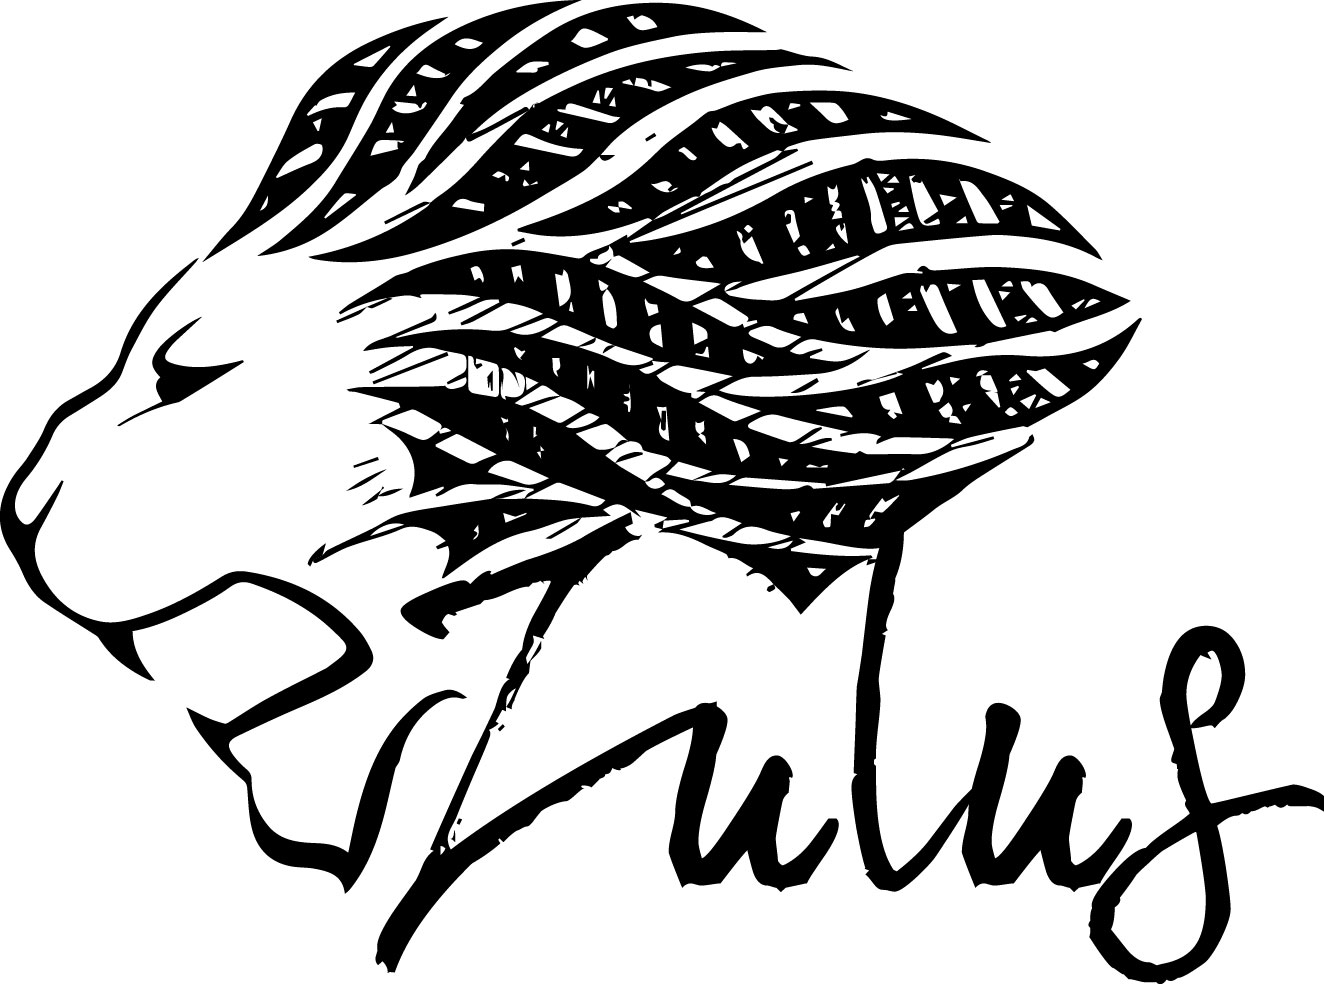 Zulu_logo_no background